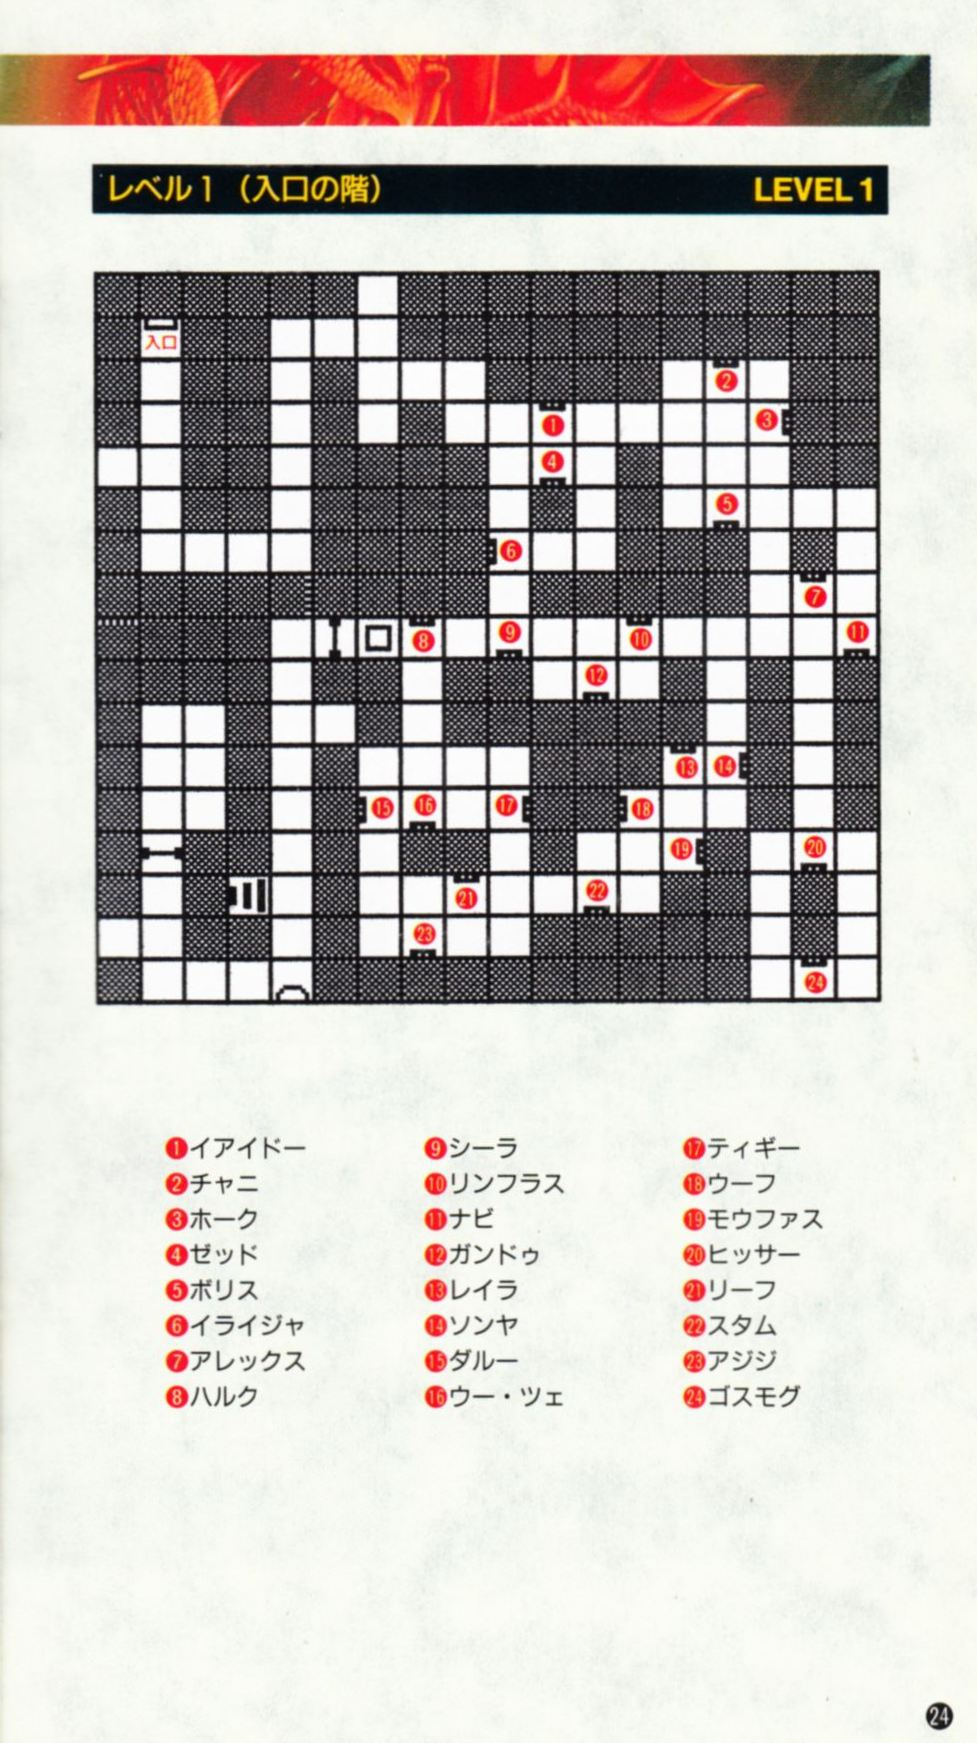 Game - Dungeon Master - JP - Super Famicom - Manual - Page 027 - Scan